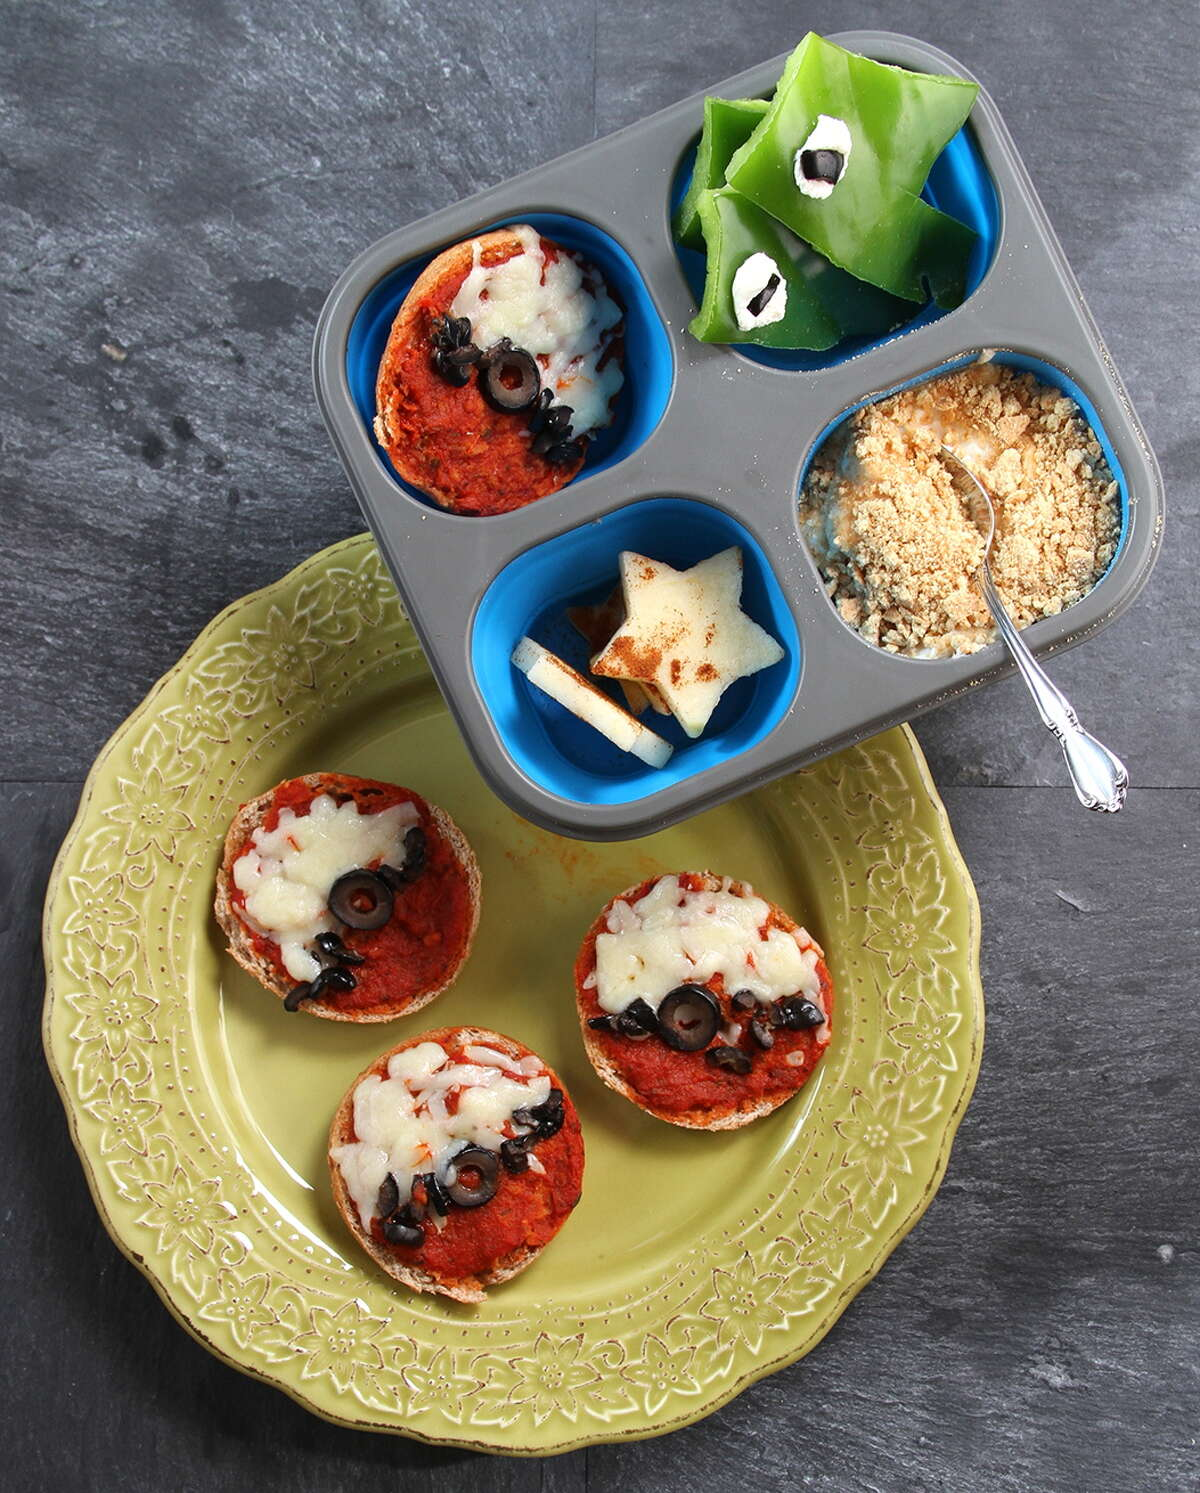 We have been busy getting ready to share a few lunch box ideas with deliciously fun ways to keep lunch filled with creative yum! These recipes are easy and can be used for afterschool snacks and/or party bites. This month, we captured the Pokemon phenomenon. We used mini bagels to create Pokeballs and green peppers to make metapods. Then we created a Sand Shrew-inspired parfait and Pikachu-inspired fruit stars for all kinds of energy. (Jodie Fitz)